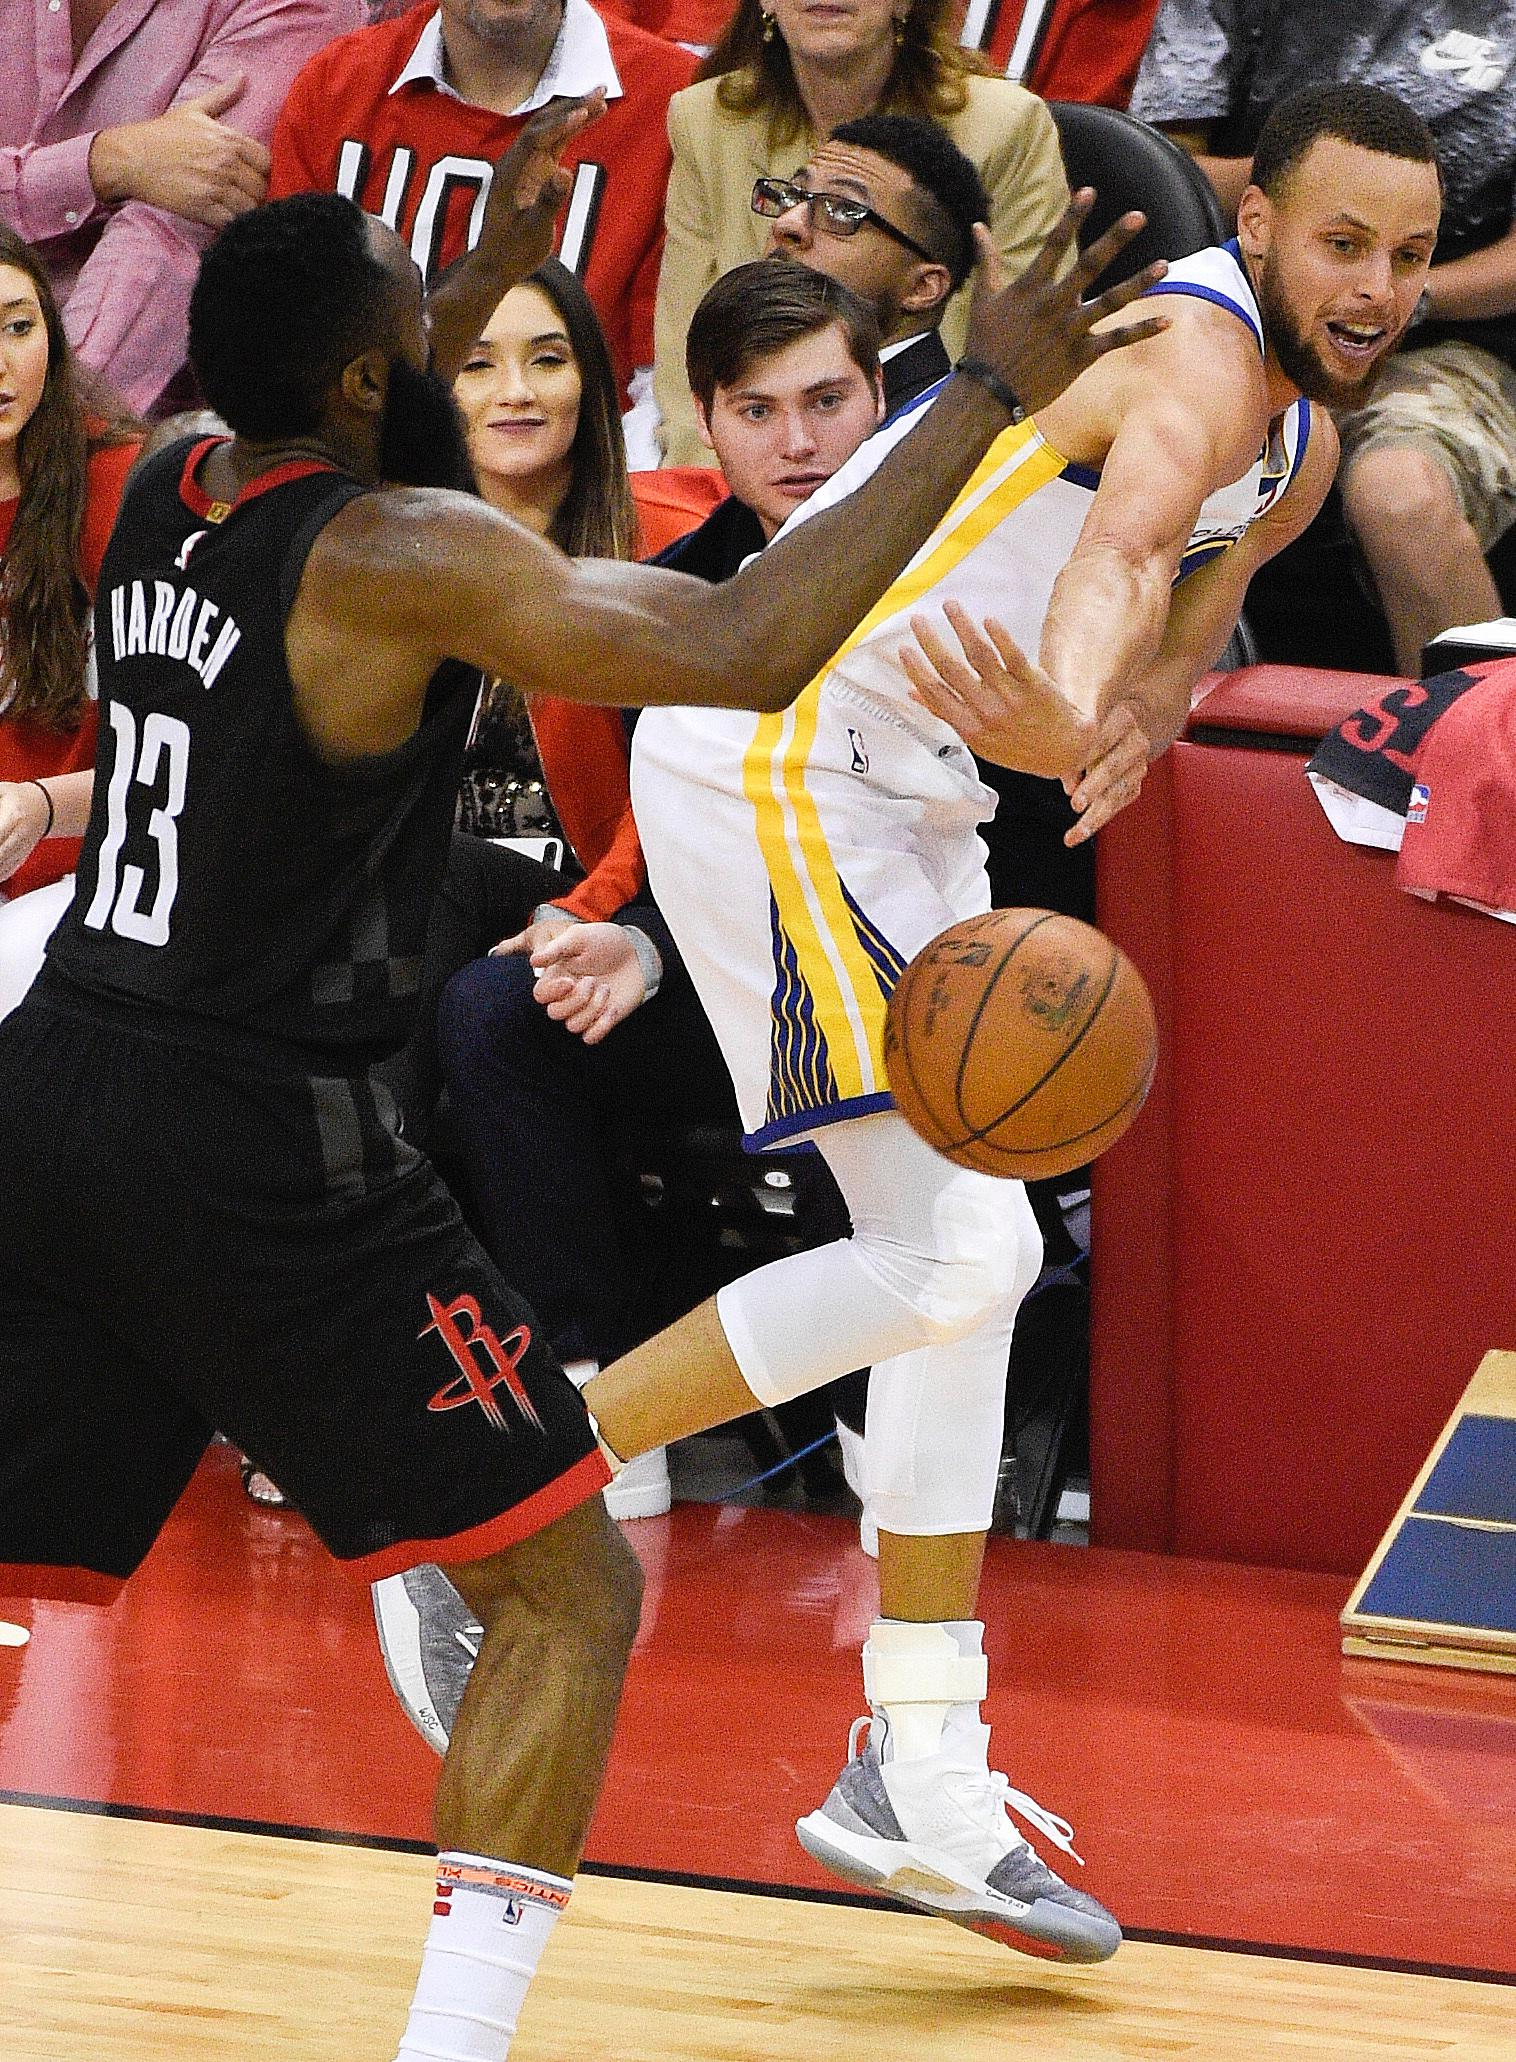 Golden State Warriors guard Stephen Curry, right, passes the ball as Houston Rockets guard James Harden (13) defends in the second half during Game 1 of the NBA basketball Western Conference Finals, Monday, May 14, 2018, in Houston. (AP Photo/Eric Christian Smith)